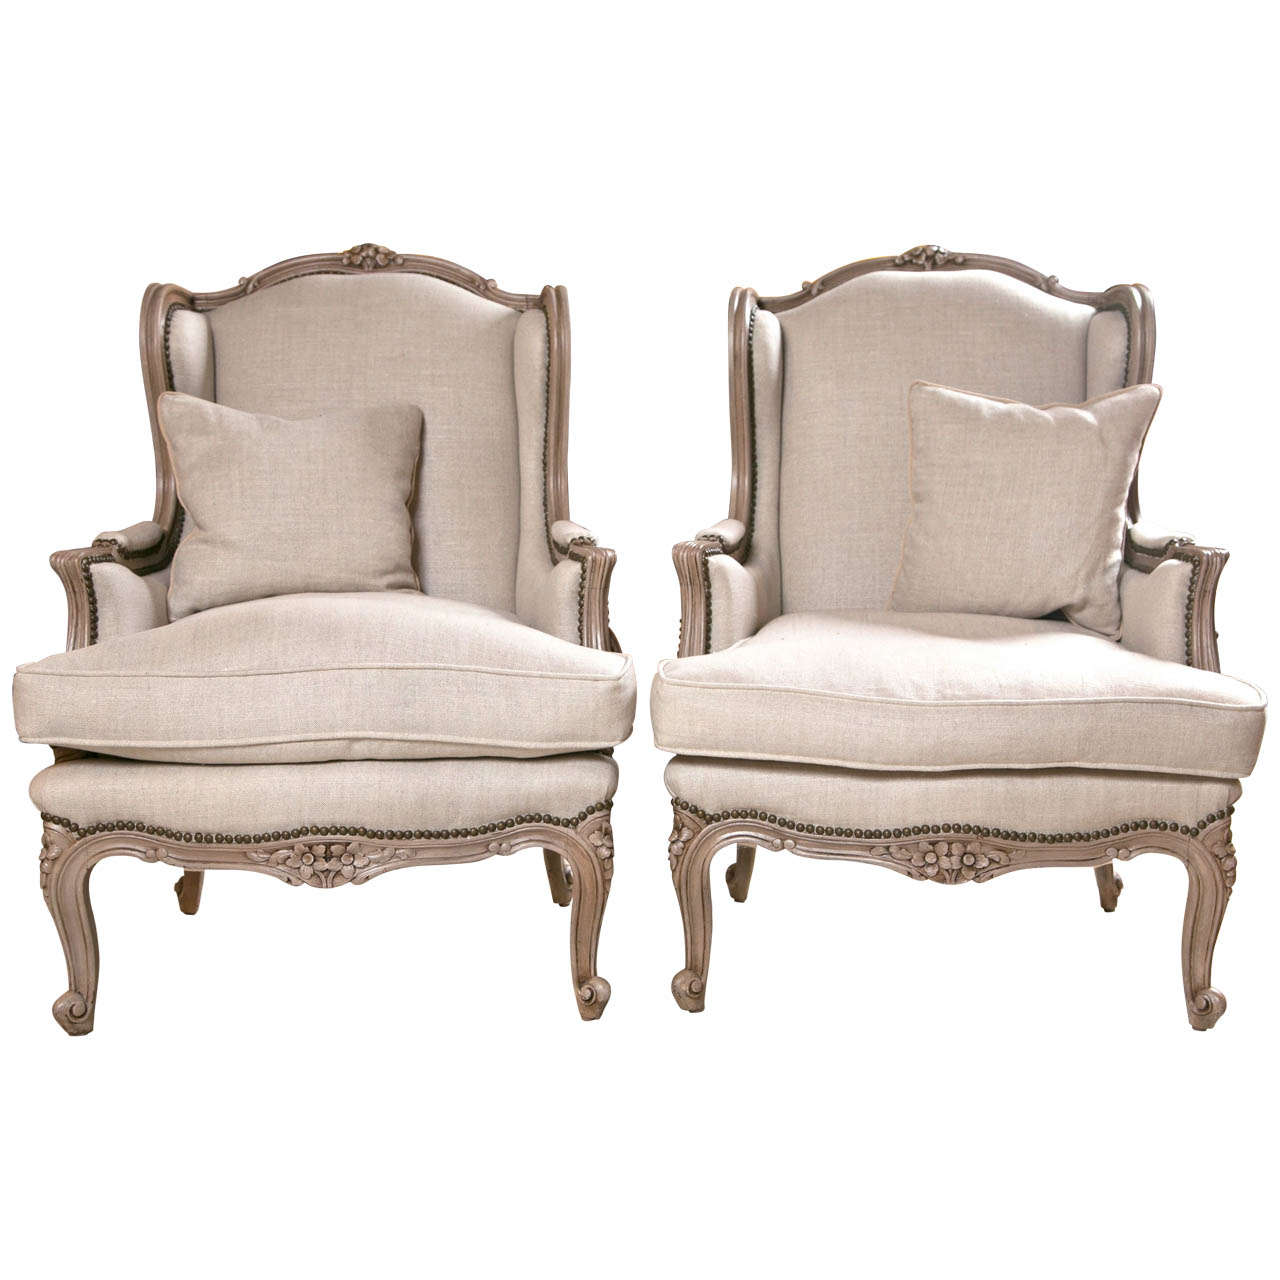 Chesterfield Maison Du Monde wing armchair. wing chairs bookmark and share wing chair